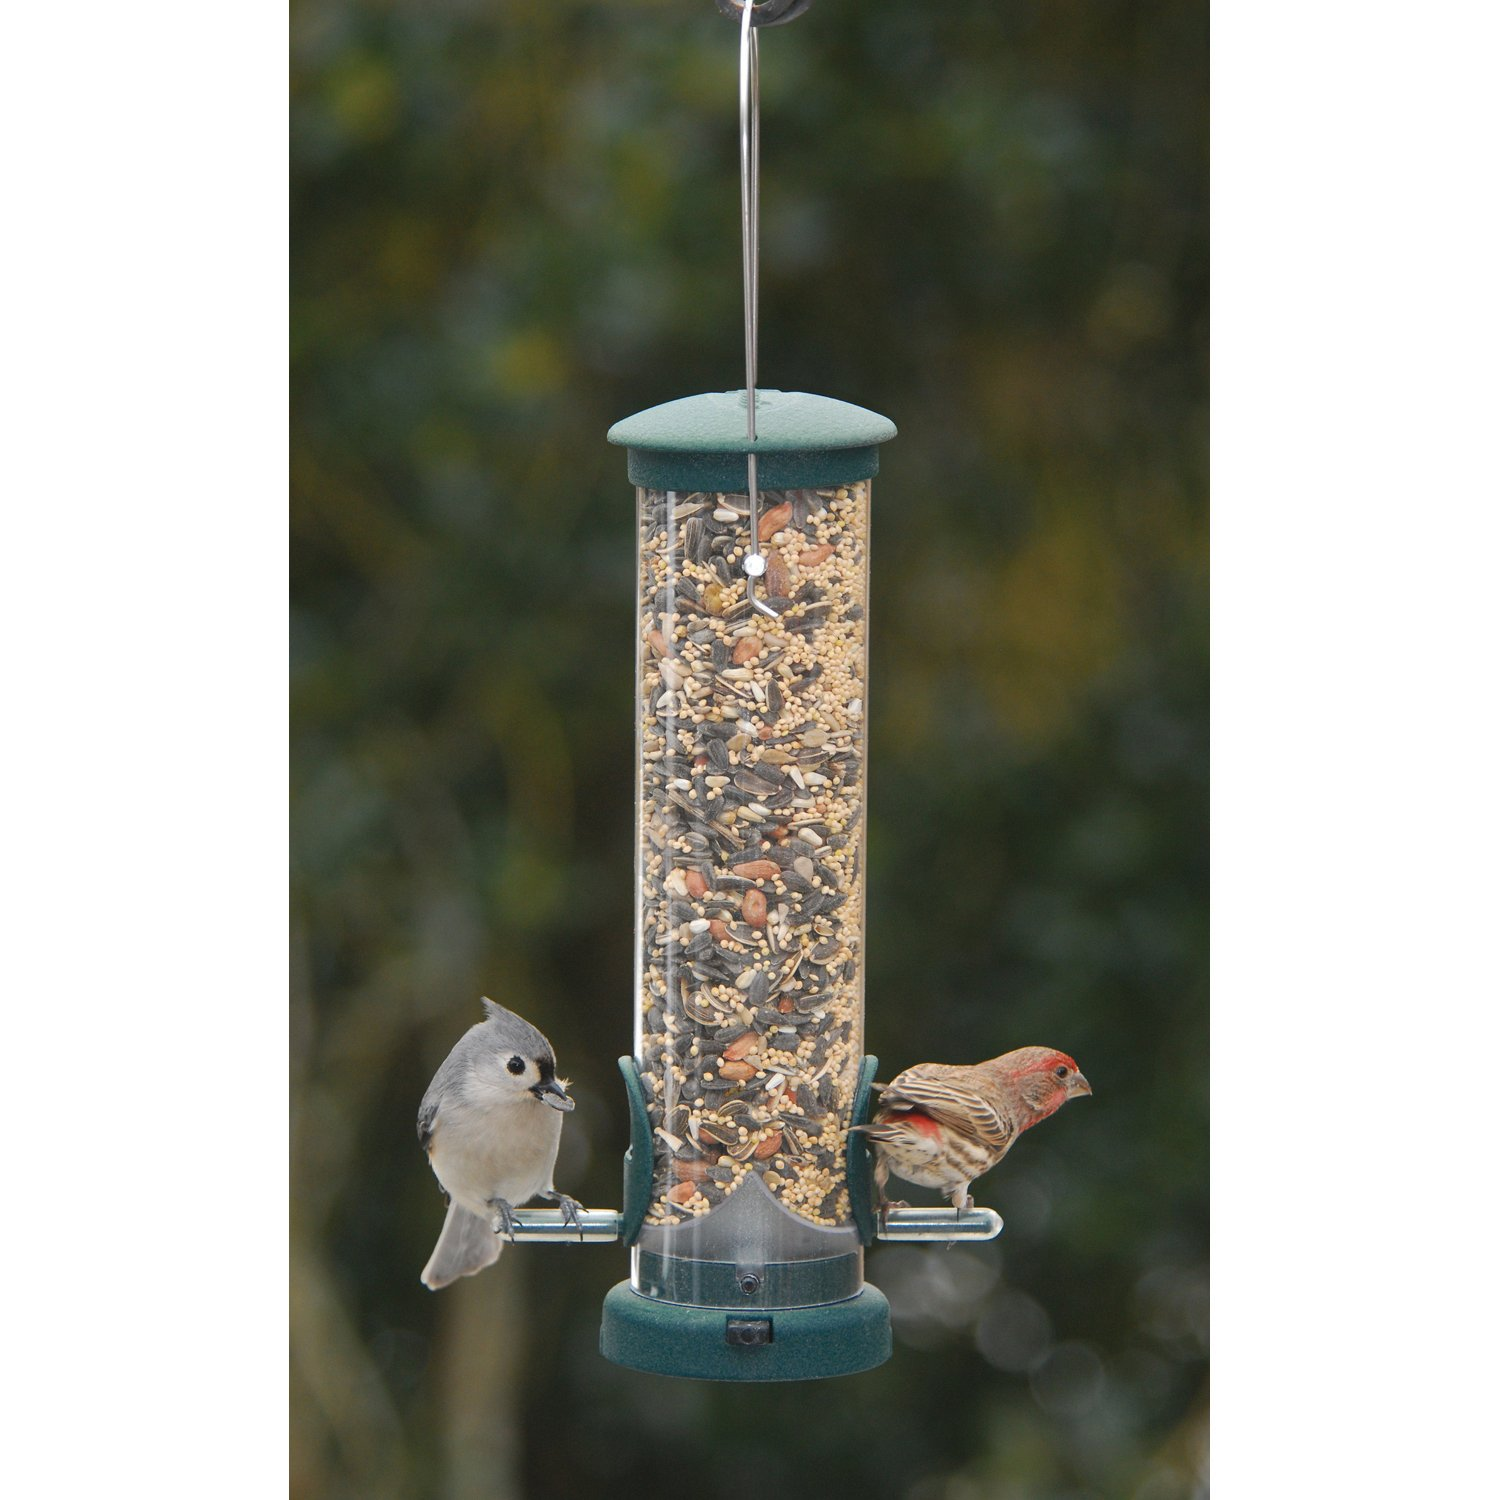 Aspects 422 Quick Clean Seed Tube Feeder, Spruce, Small by Aspects